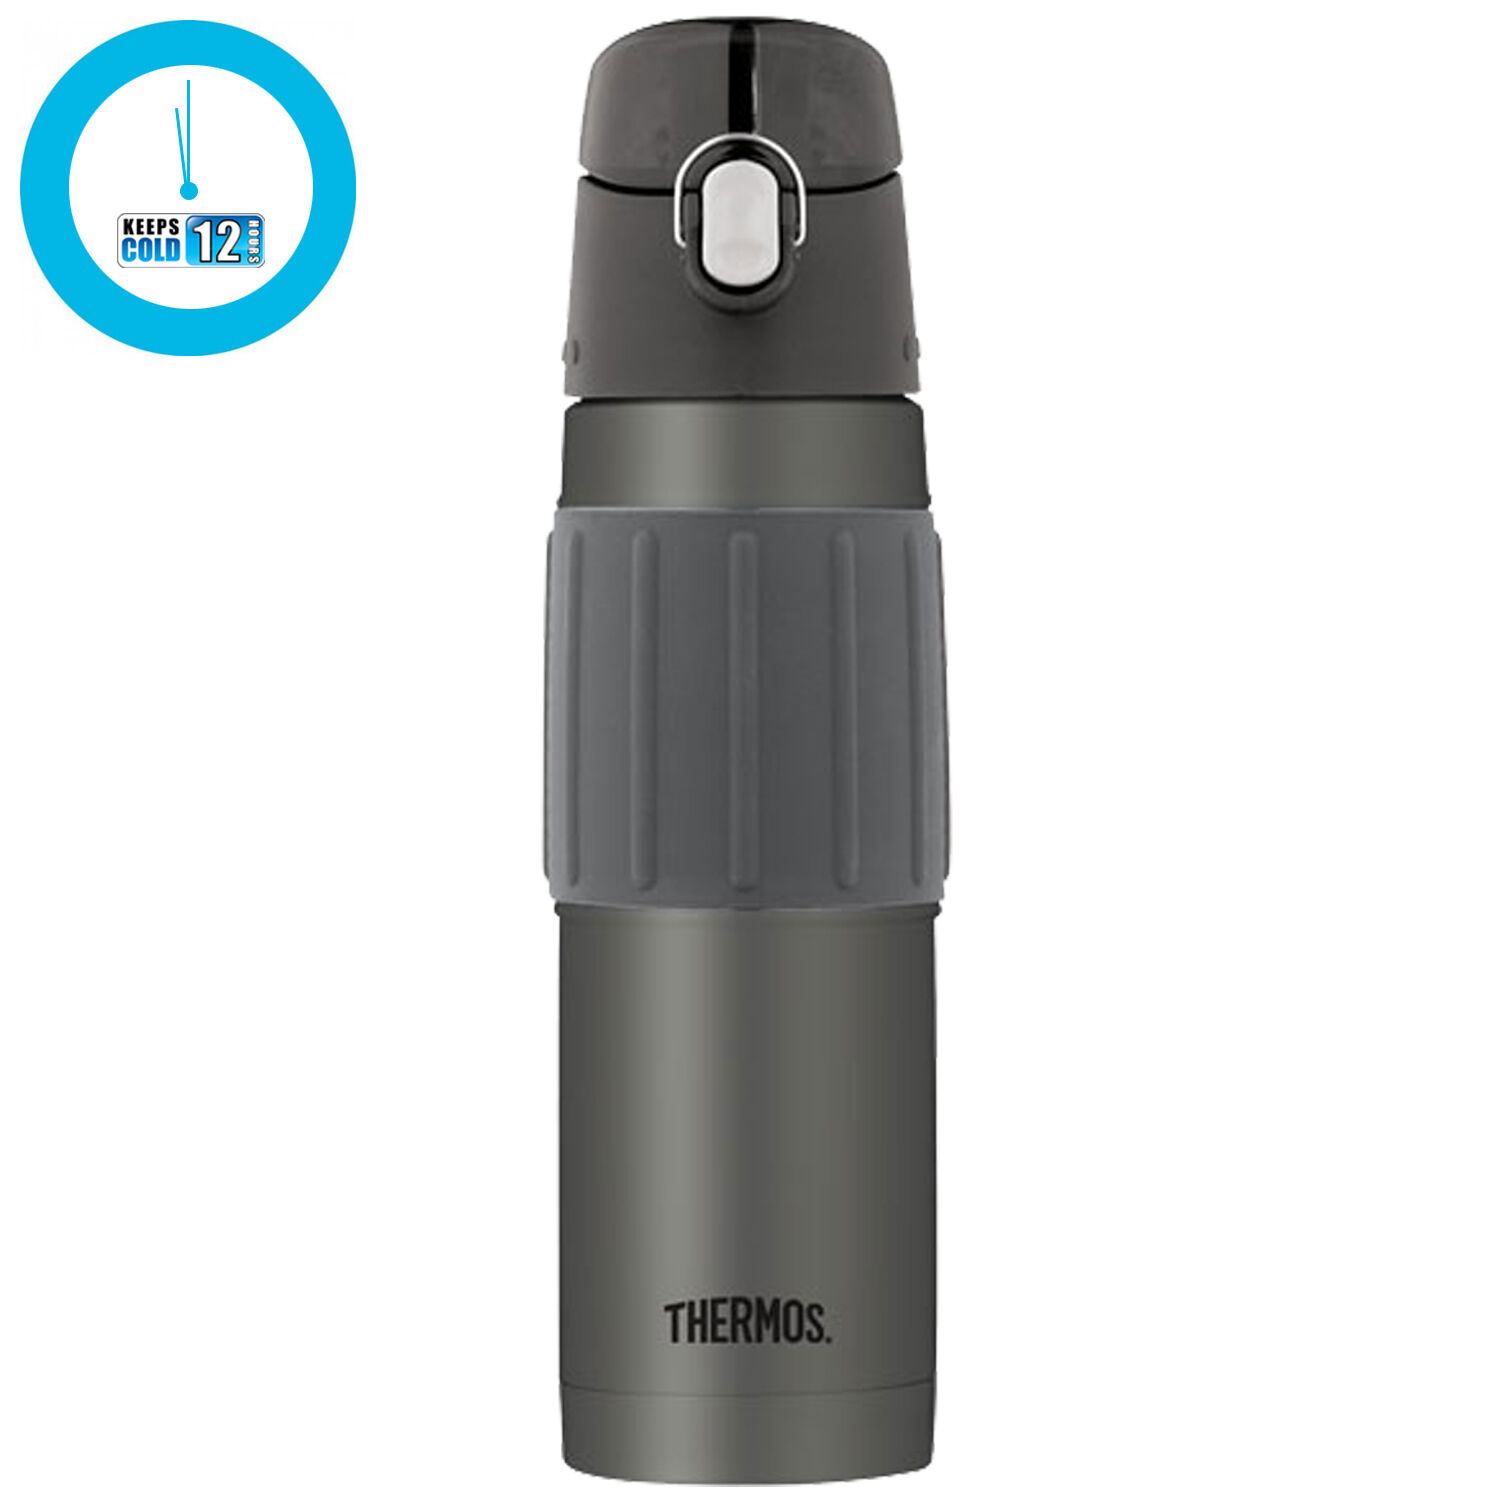 THERMOS HS4040CH6 18-oz Stainless Steel Hydration Bottle